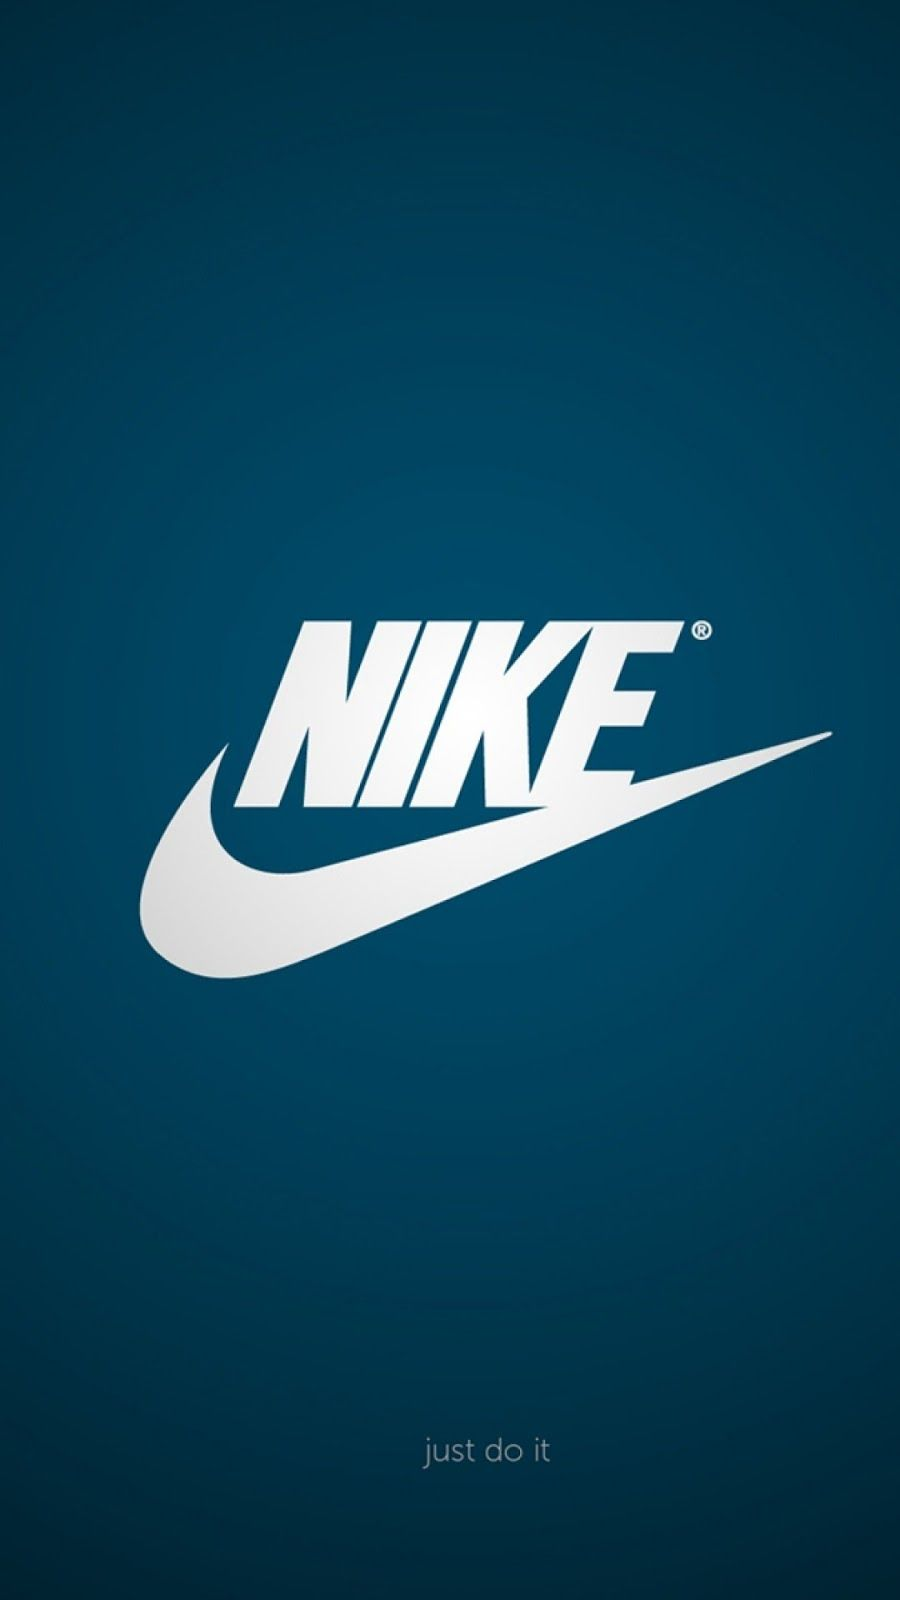 Nike Logo Hd Wallpapers For Iphone X Iphone Xr Iphone 11 Etc Andriblog001 In 2020 Nike Logo Wallpapers Nike Wallpaper Logo Wallpaper Hd